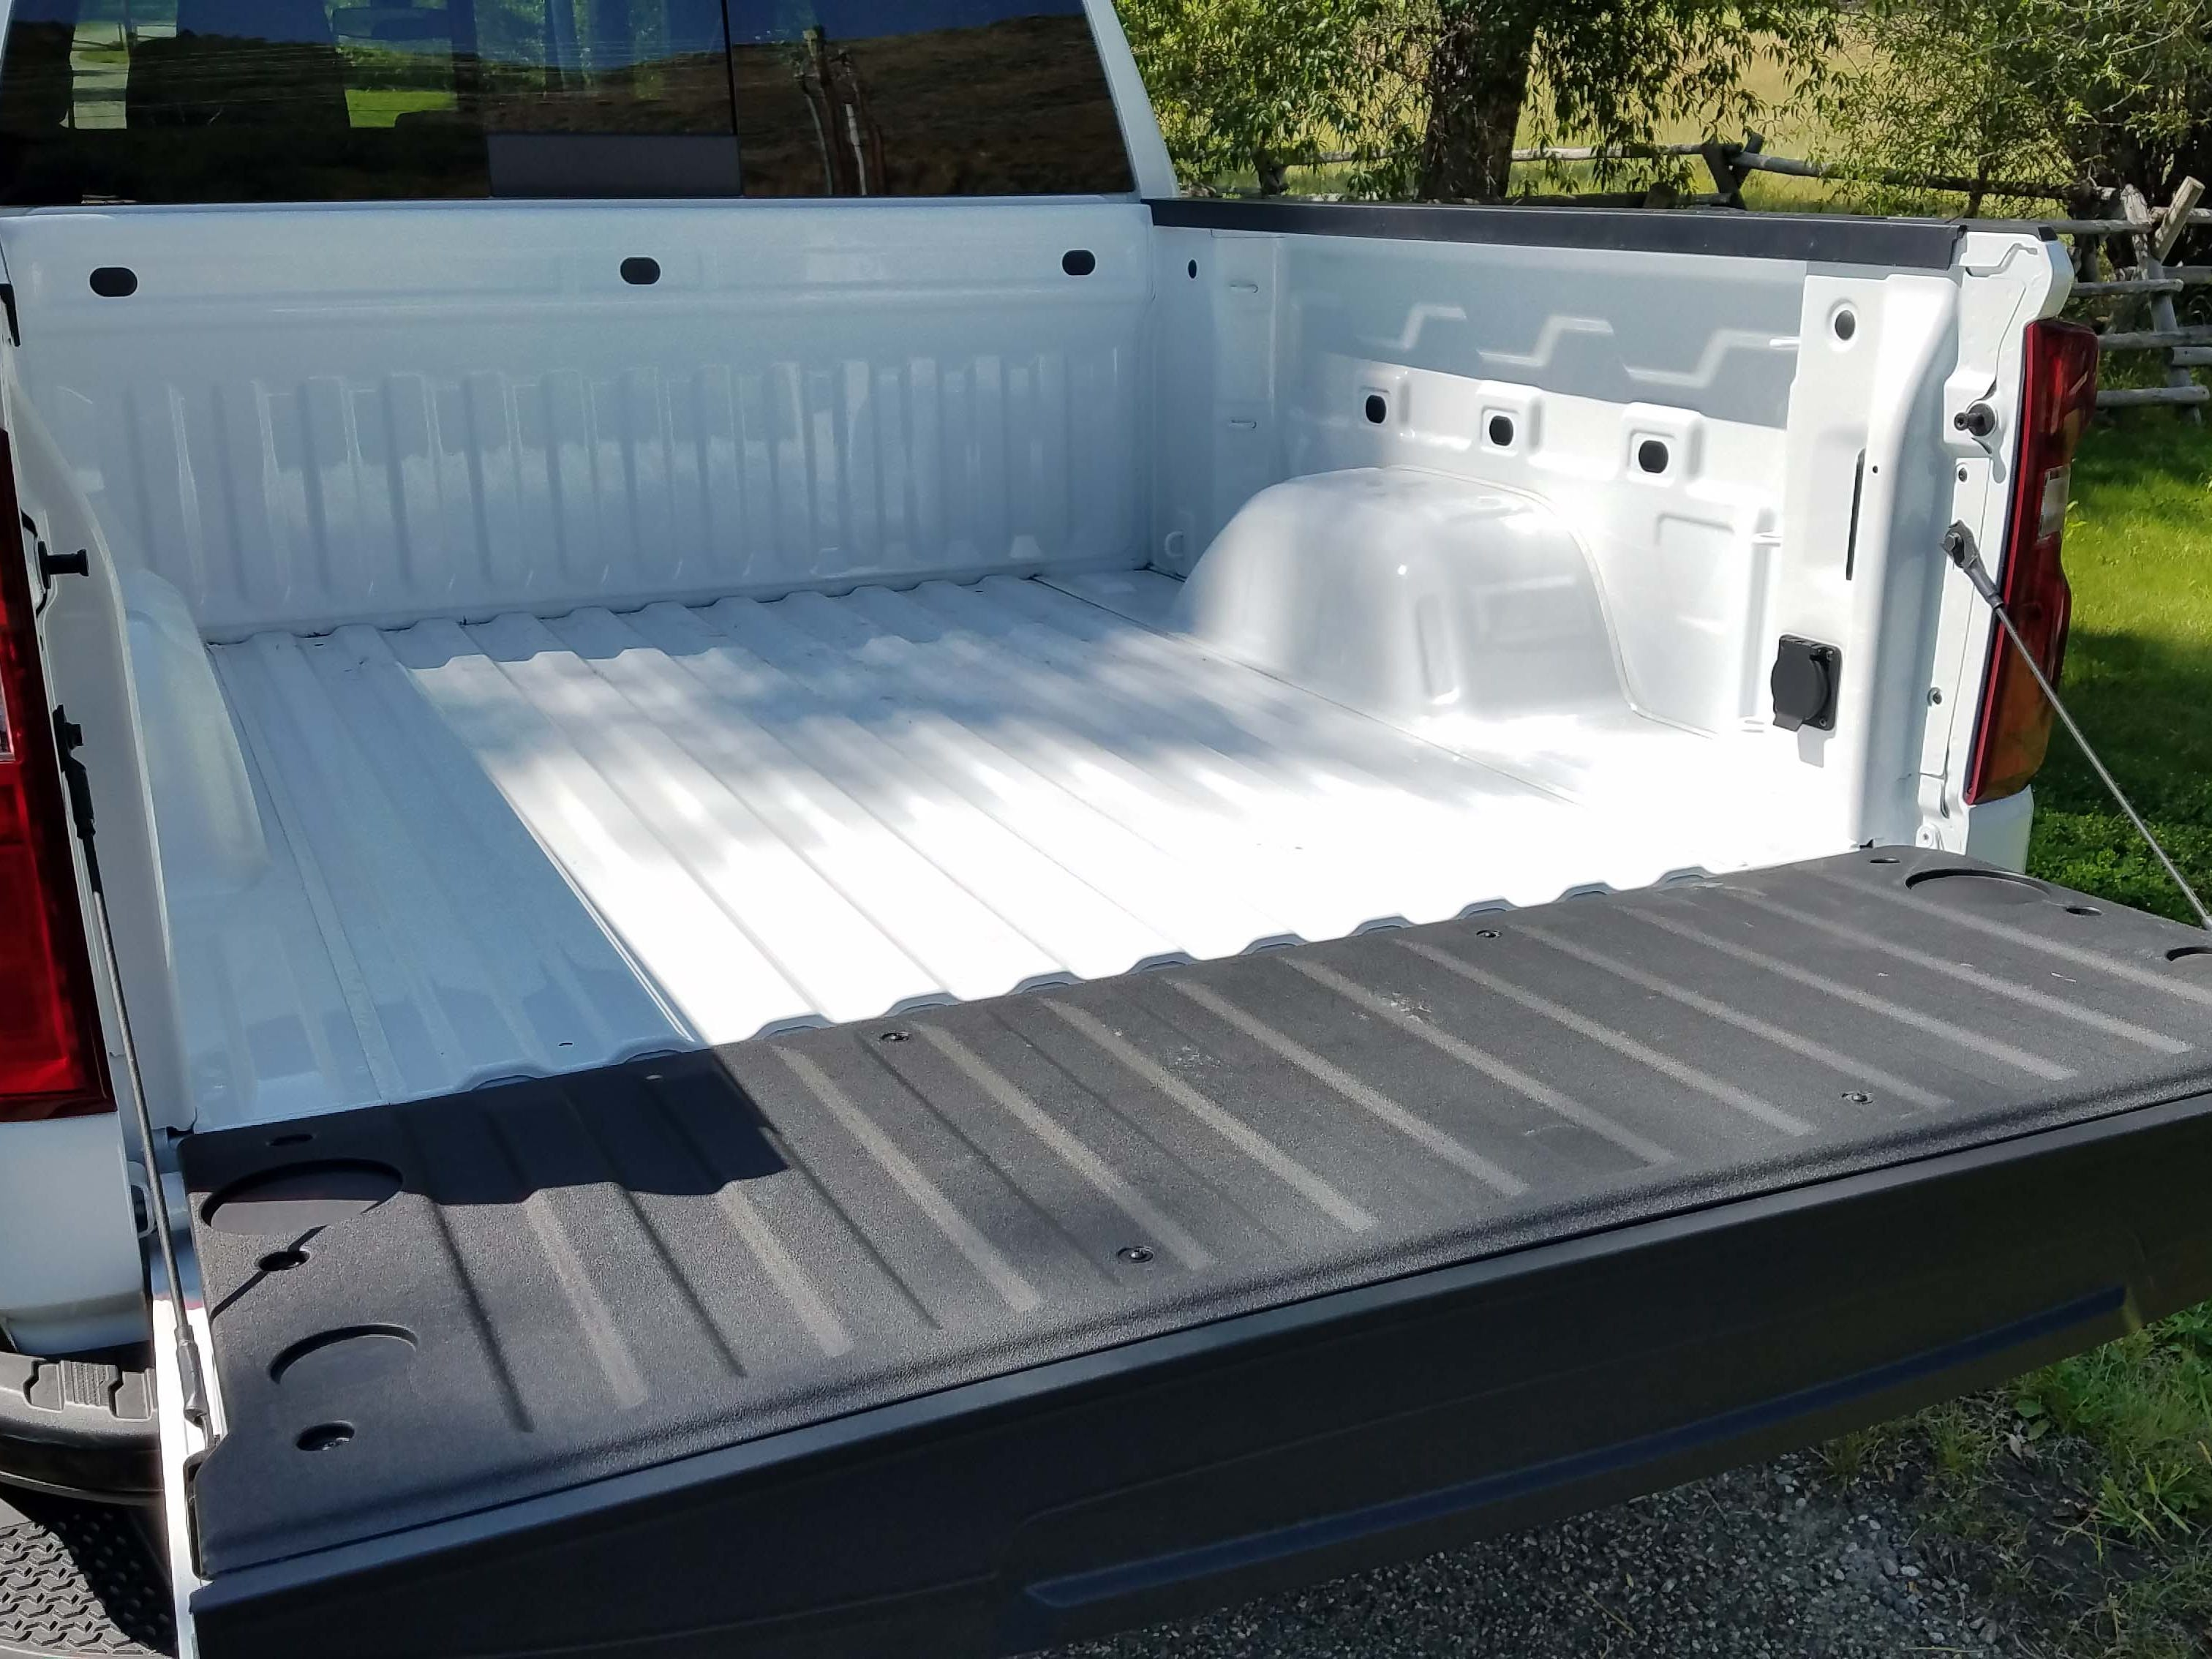 The standard box of the 2019 Chevy Silverado is the largest in its class — increased 7 inches in width by scalloping out the sidewalls. An automatic tailgate — which can be operated remotely — is also available.